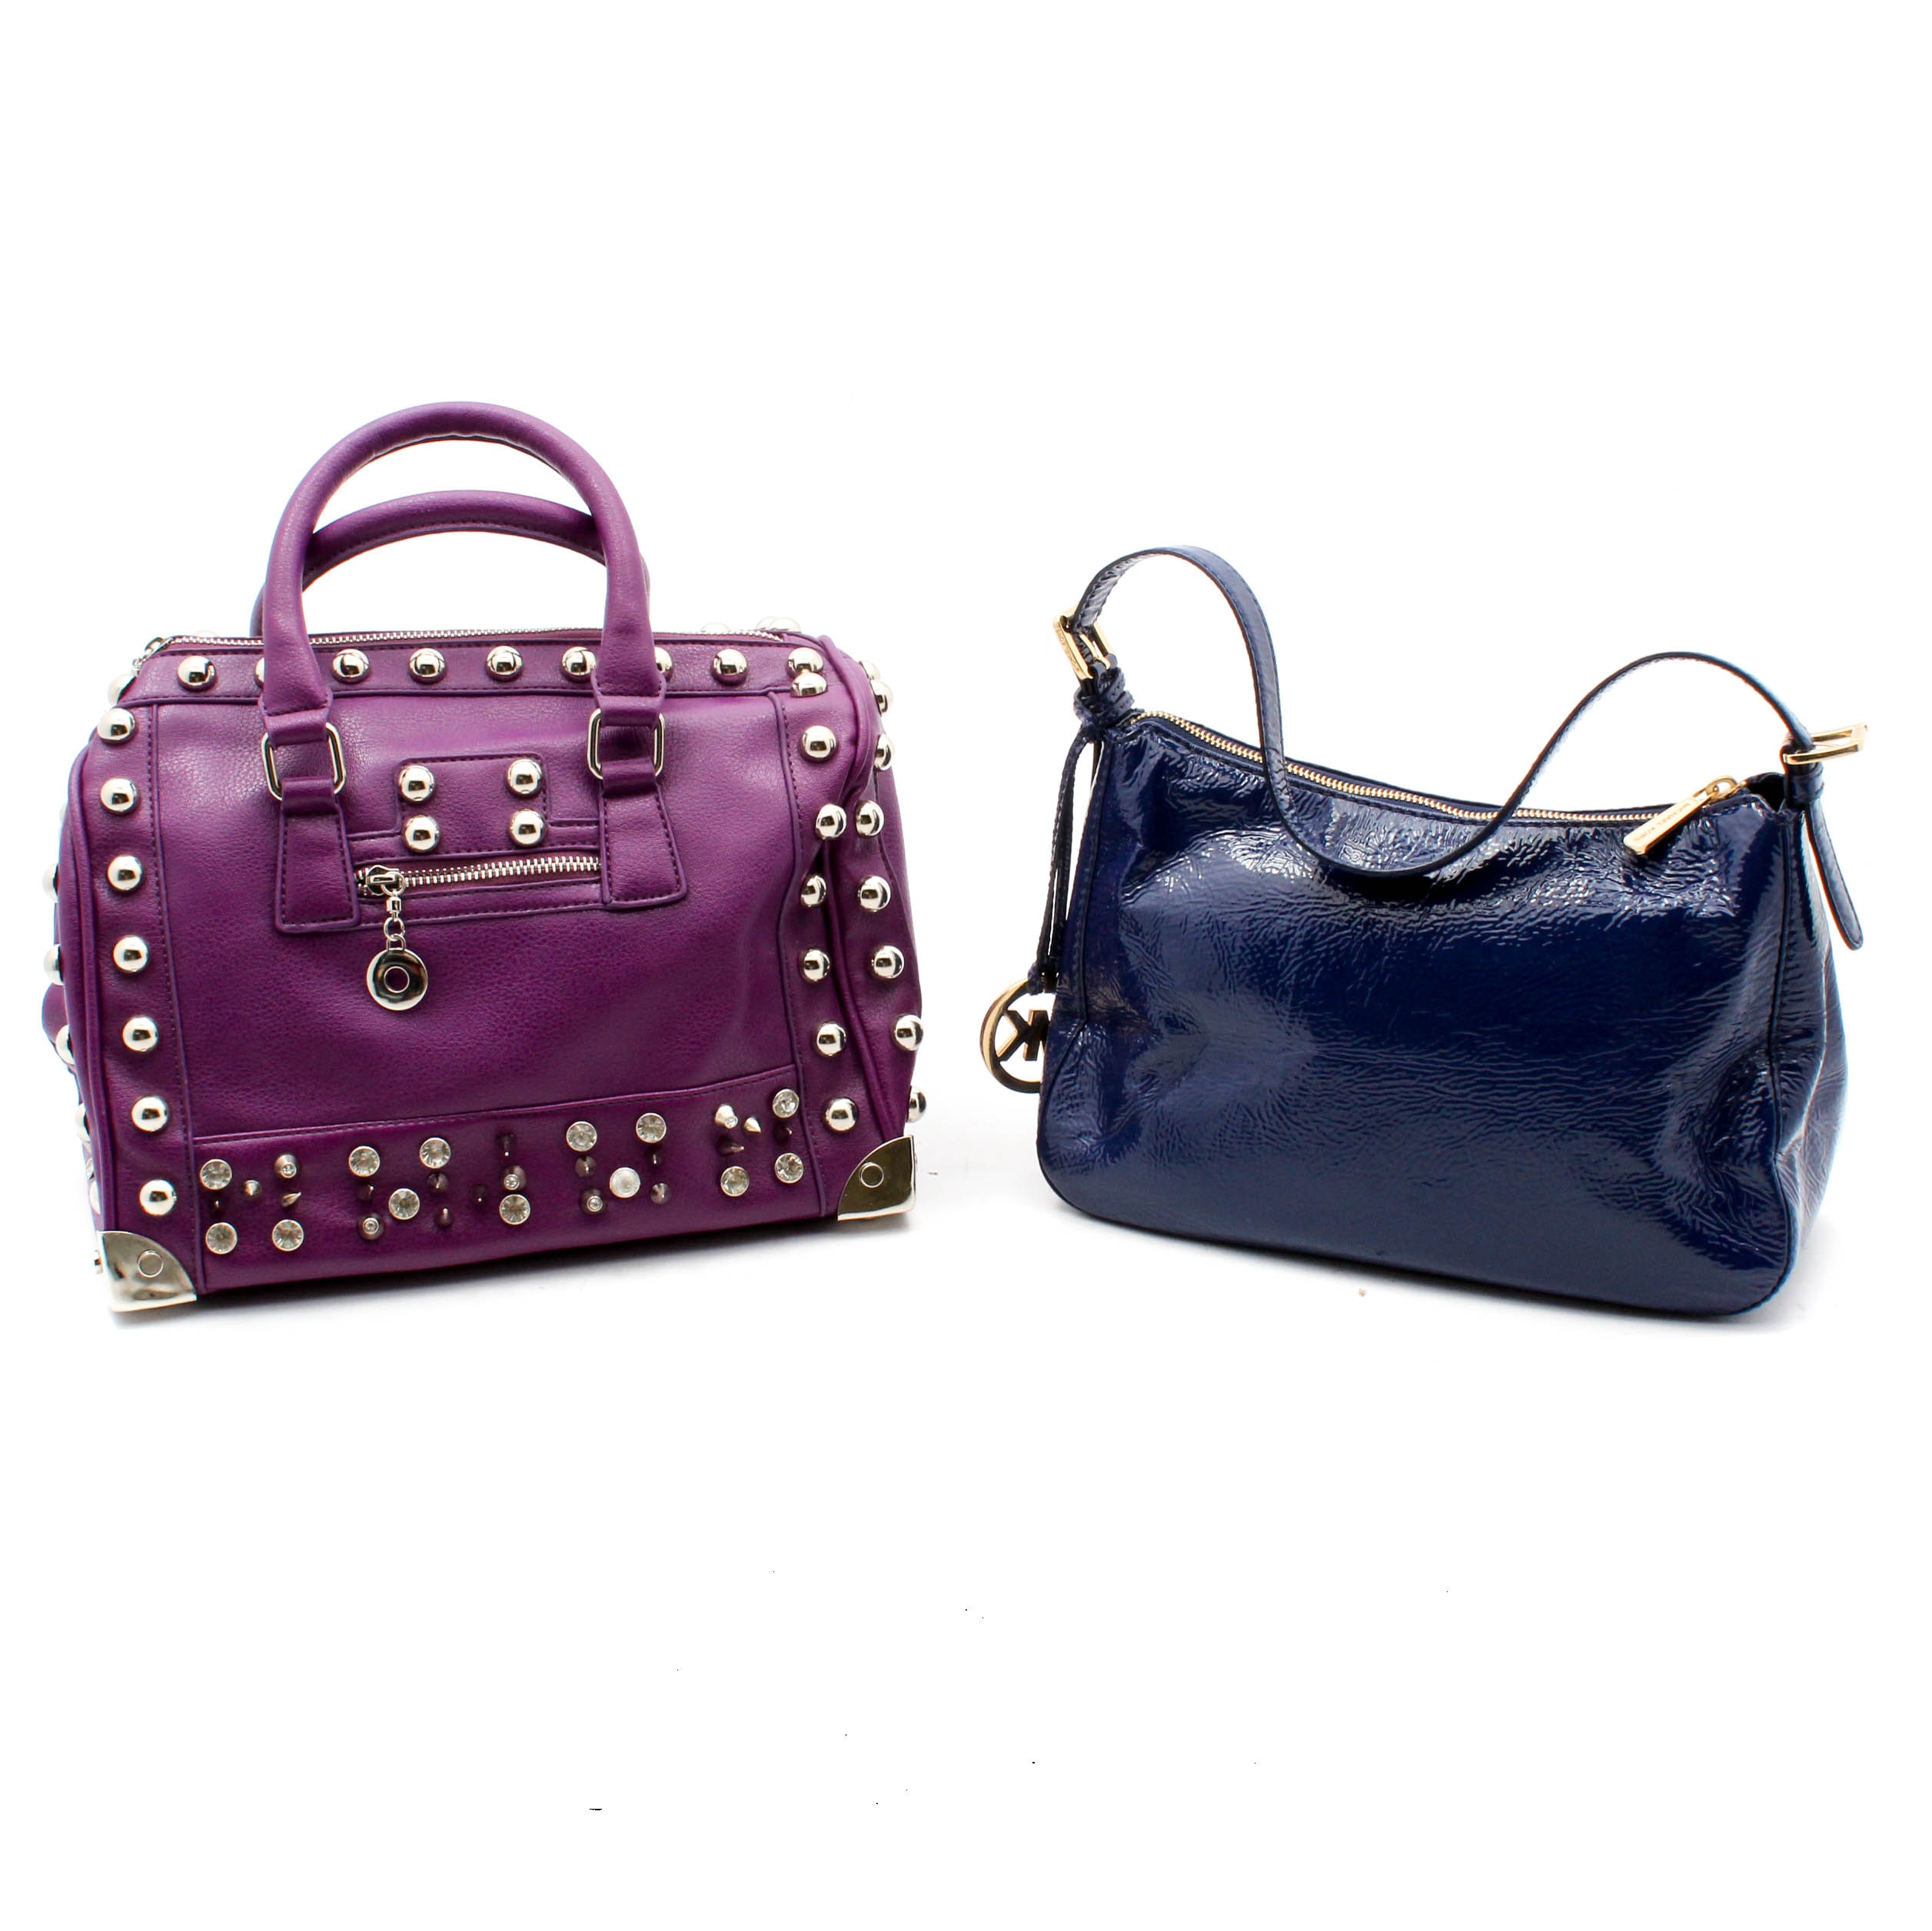 Two Handbags Featuring MICHAEL Michael Kors Blue Patent Leather Bag